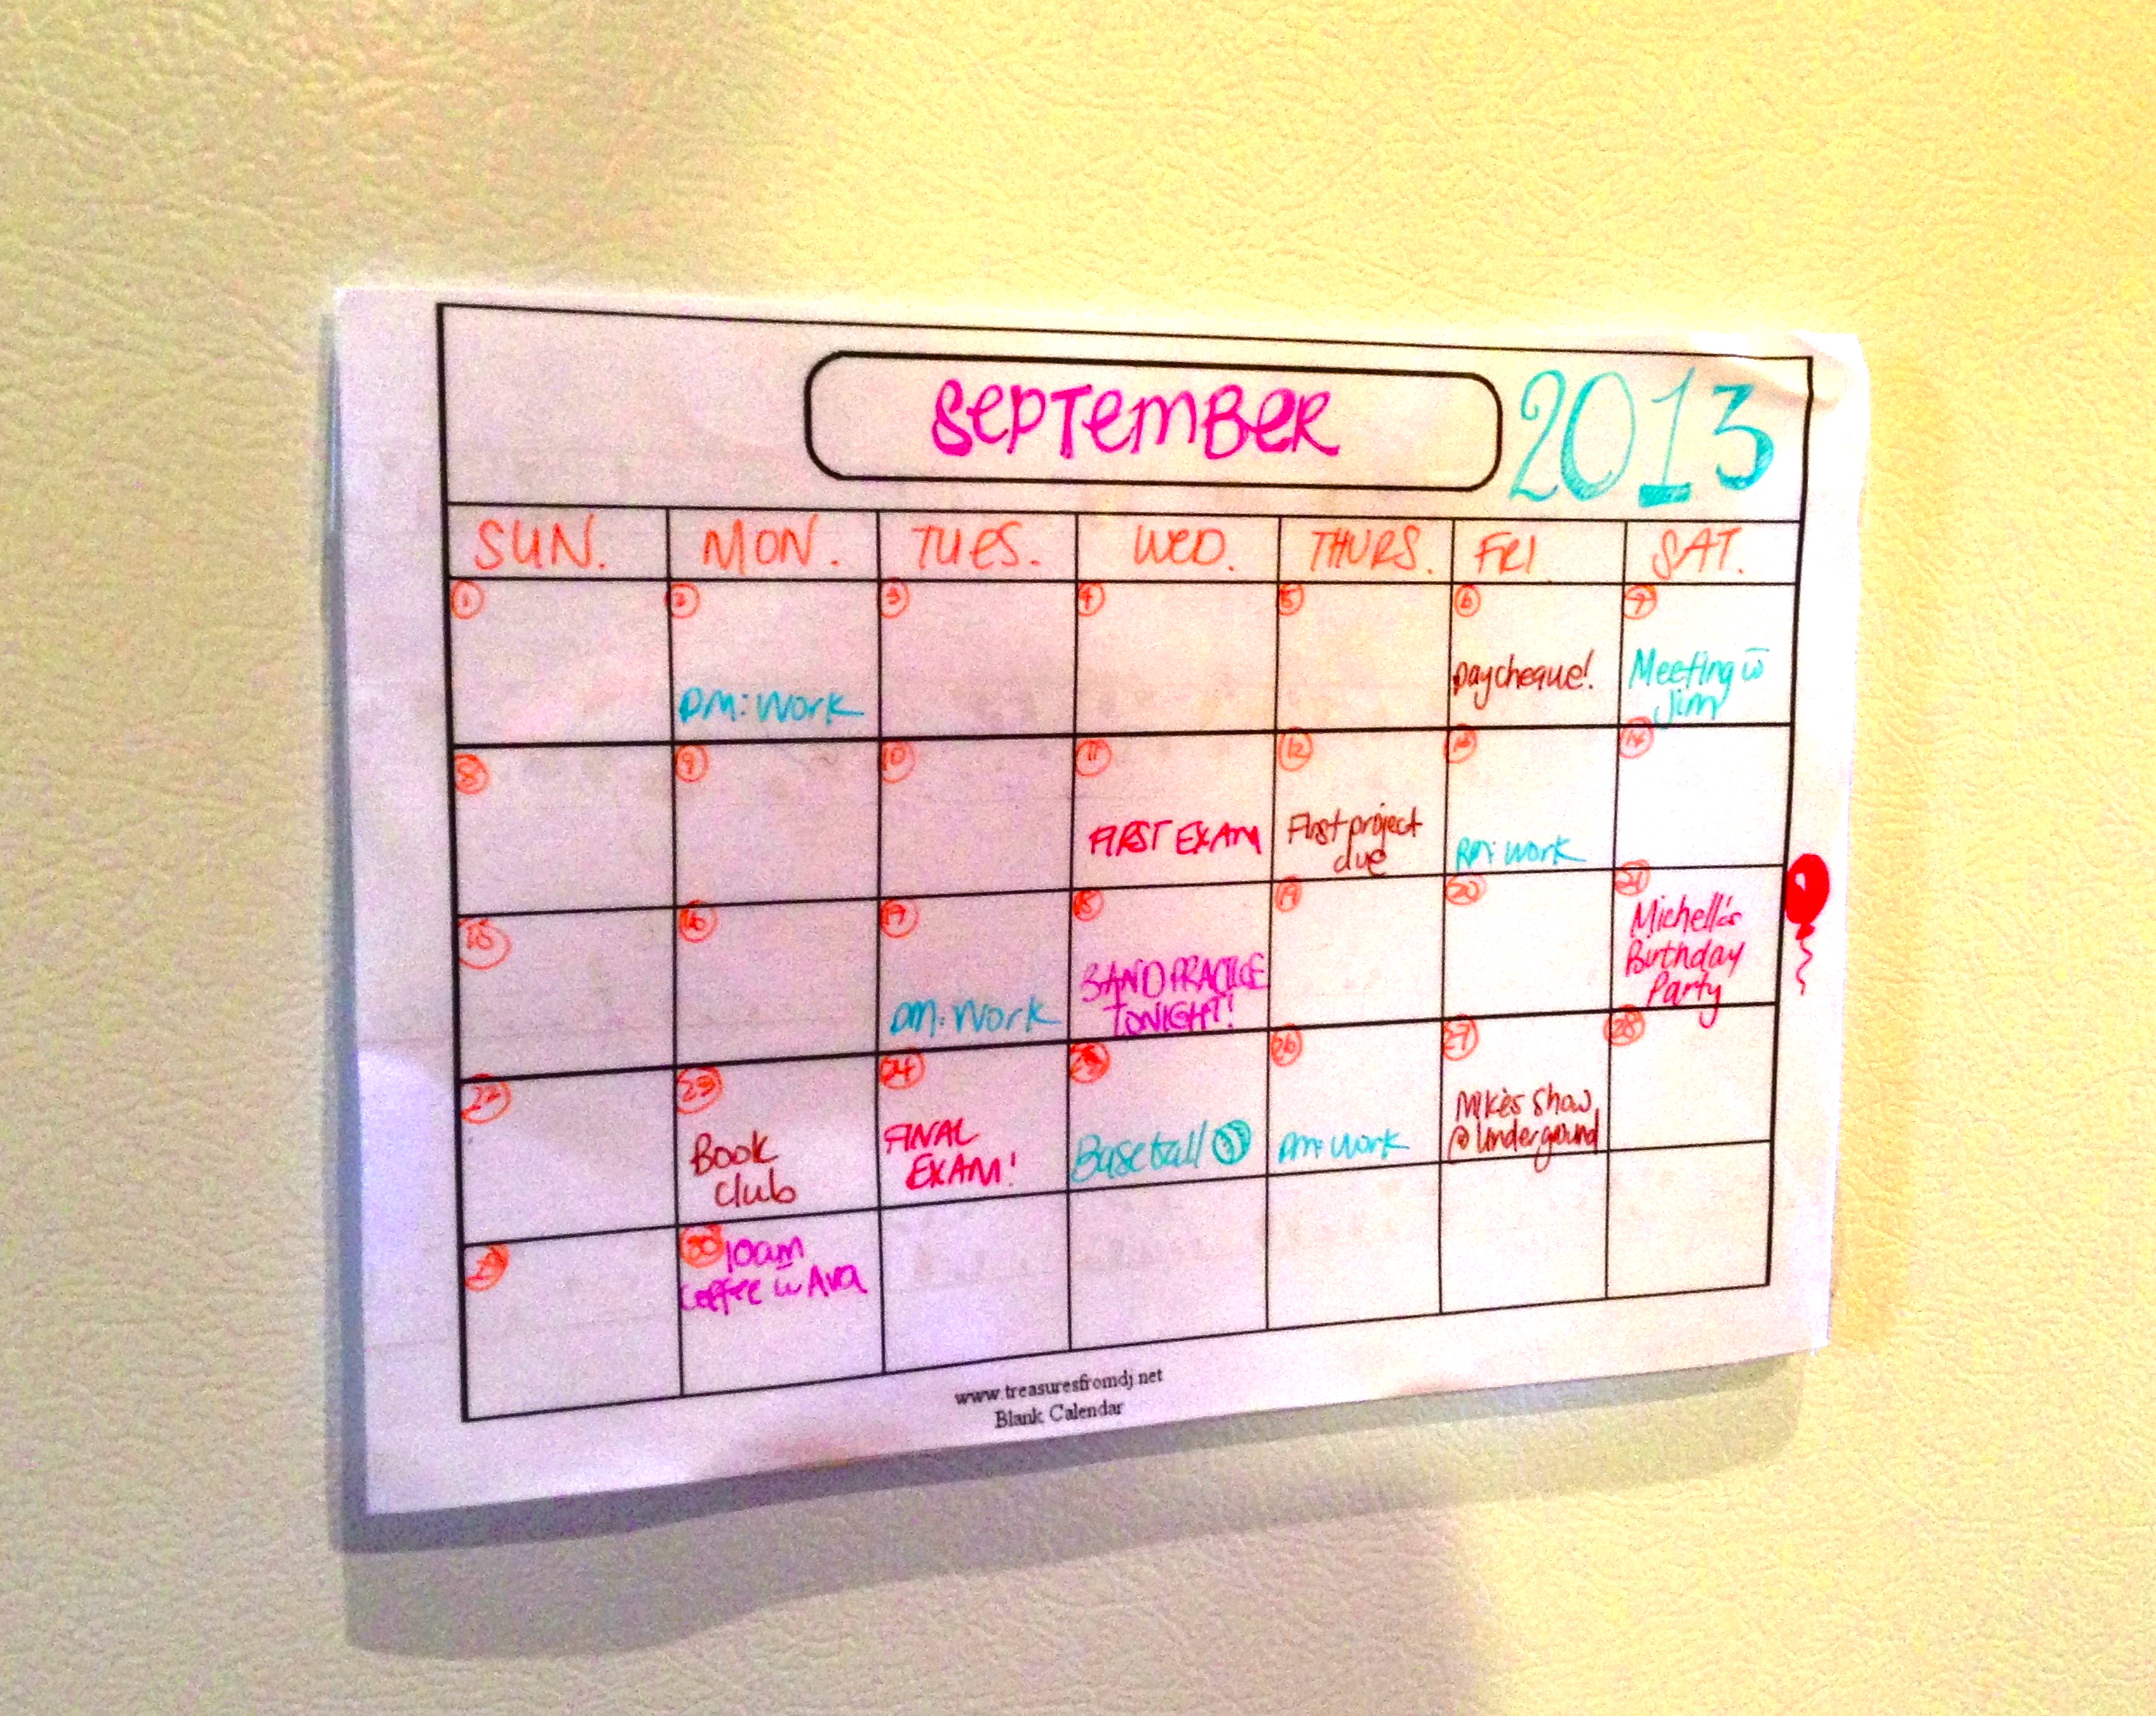 Diy Calendar Supplies : Diy dry erase calendar bandit tape gun